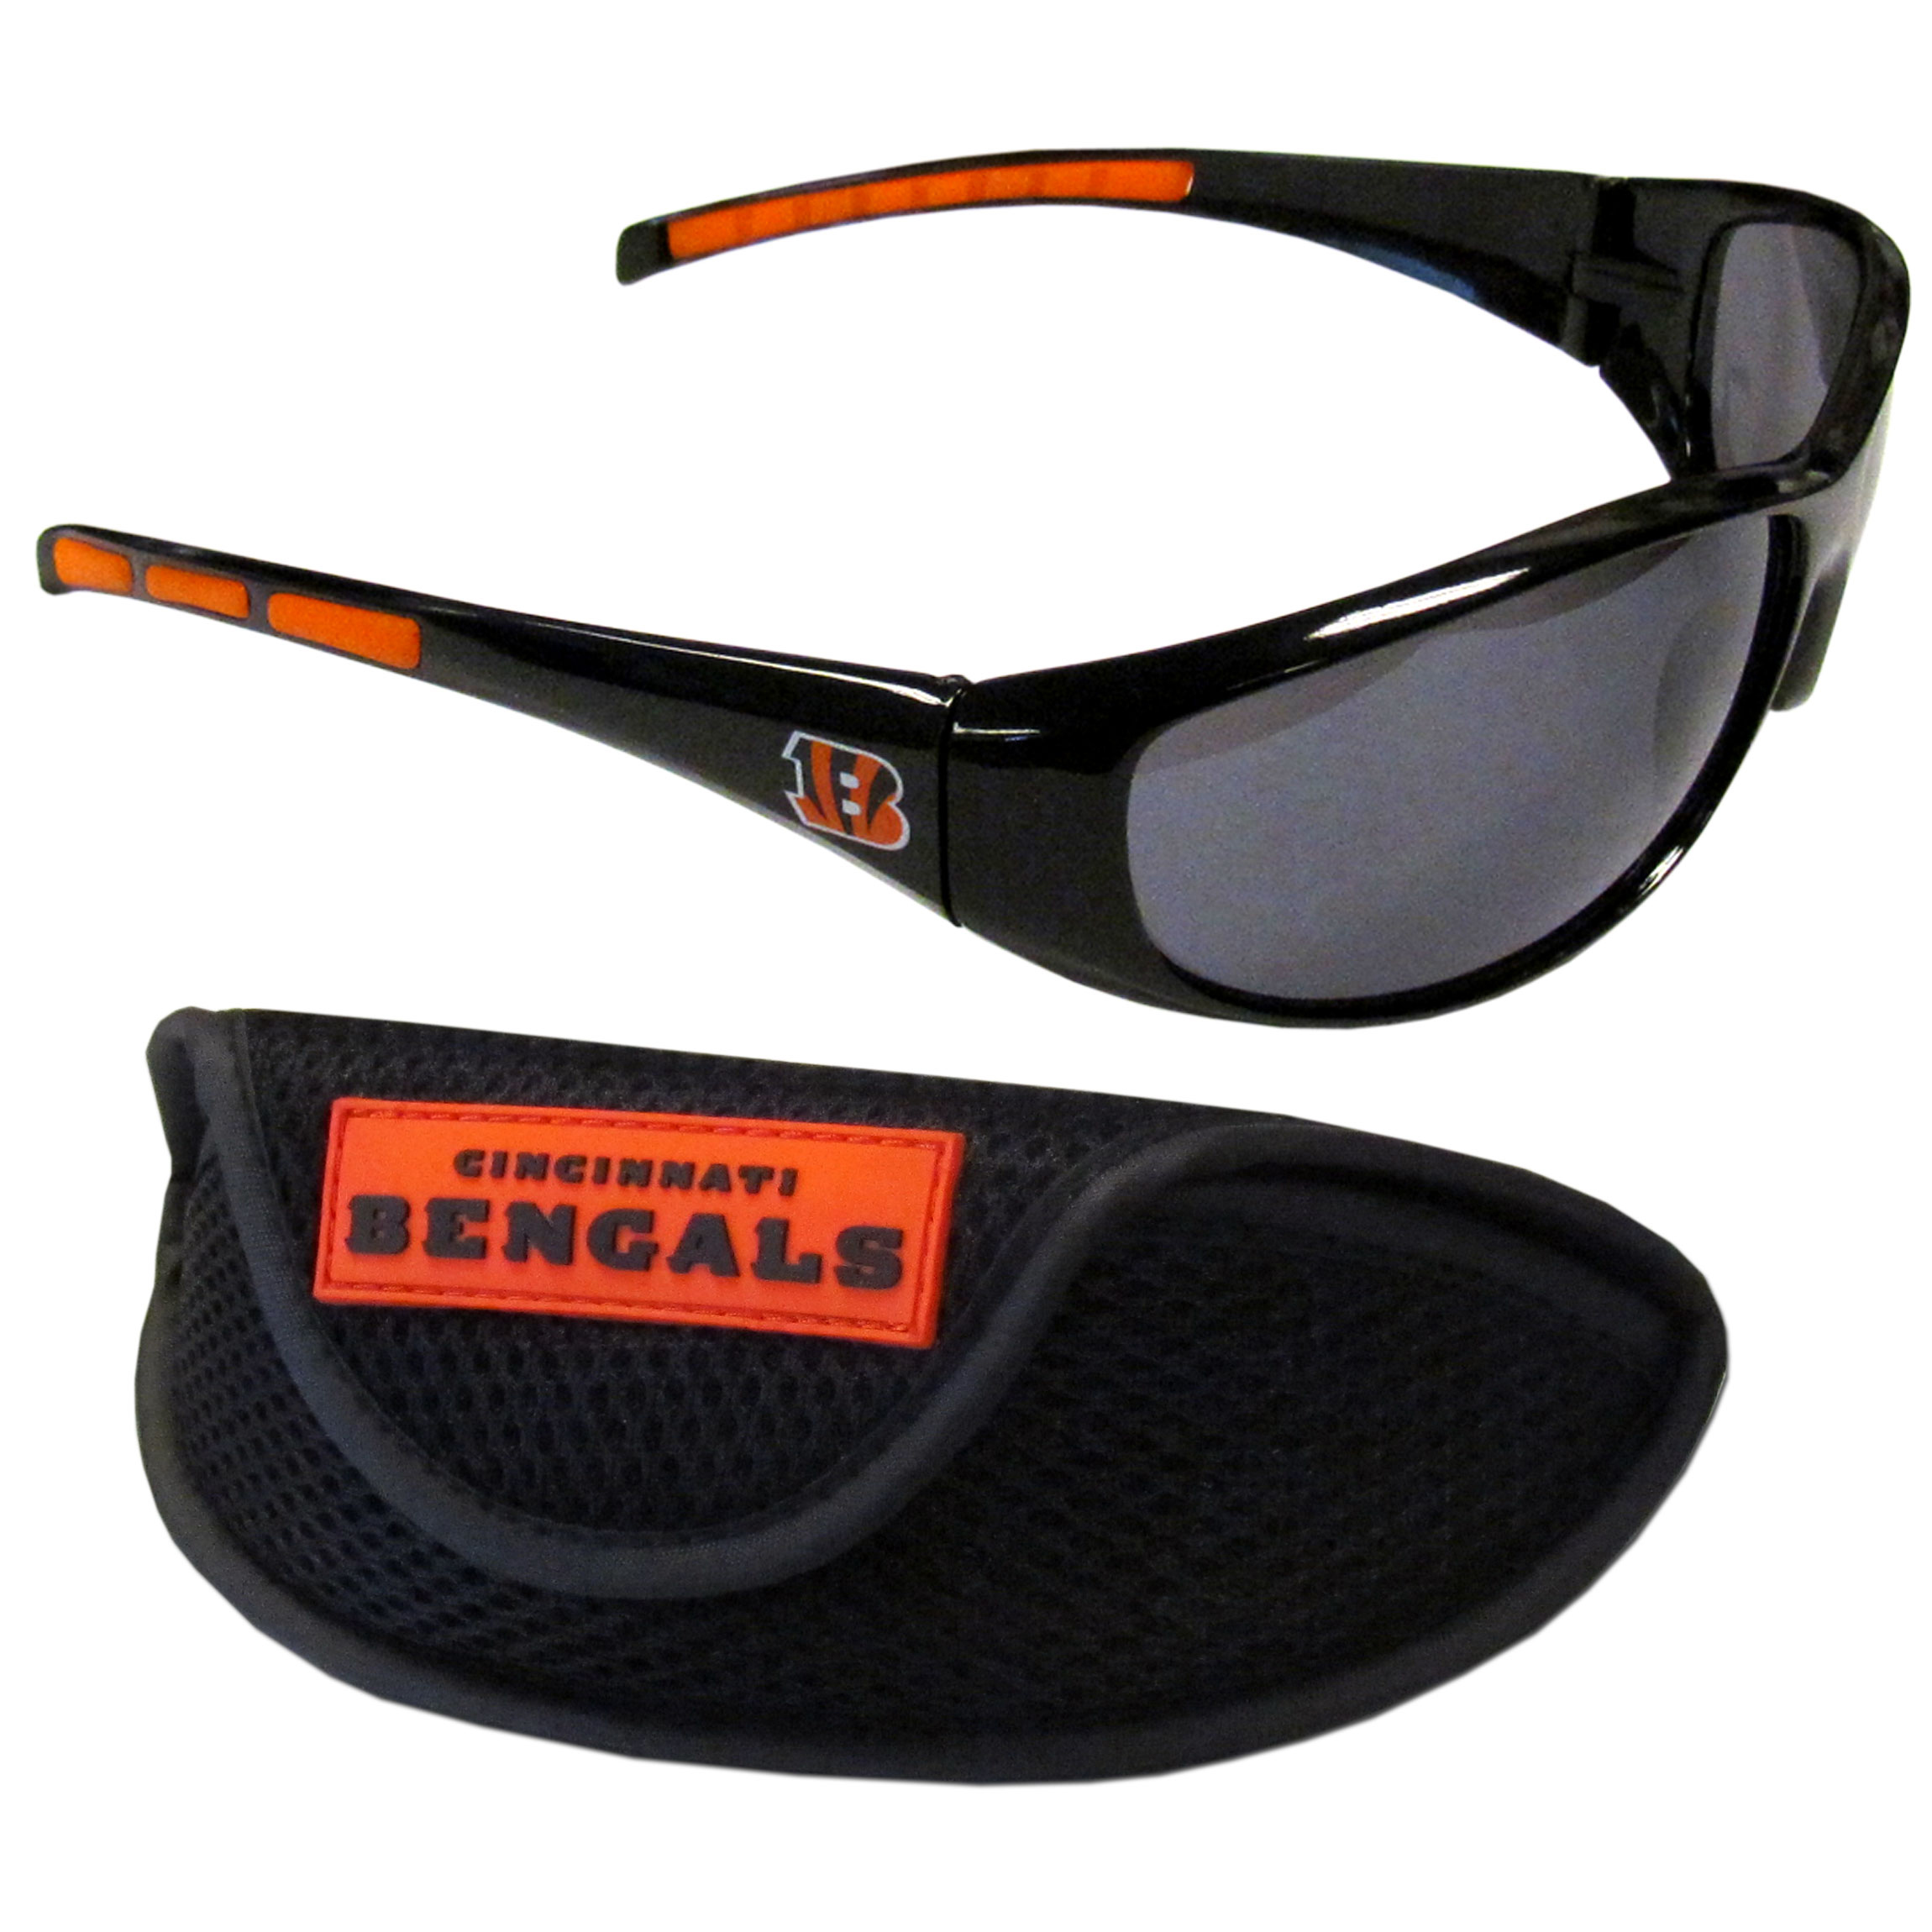 Cincinnati Bengals Wrap Sunglass and Case Set - This great set includes a high quality pair of Cincinnati Bengals wrap sunglasses and sport carrying case.